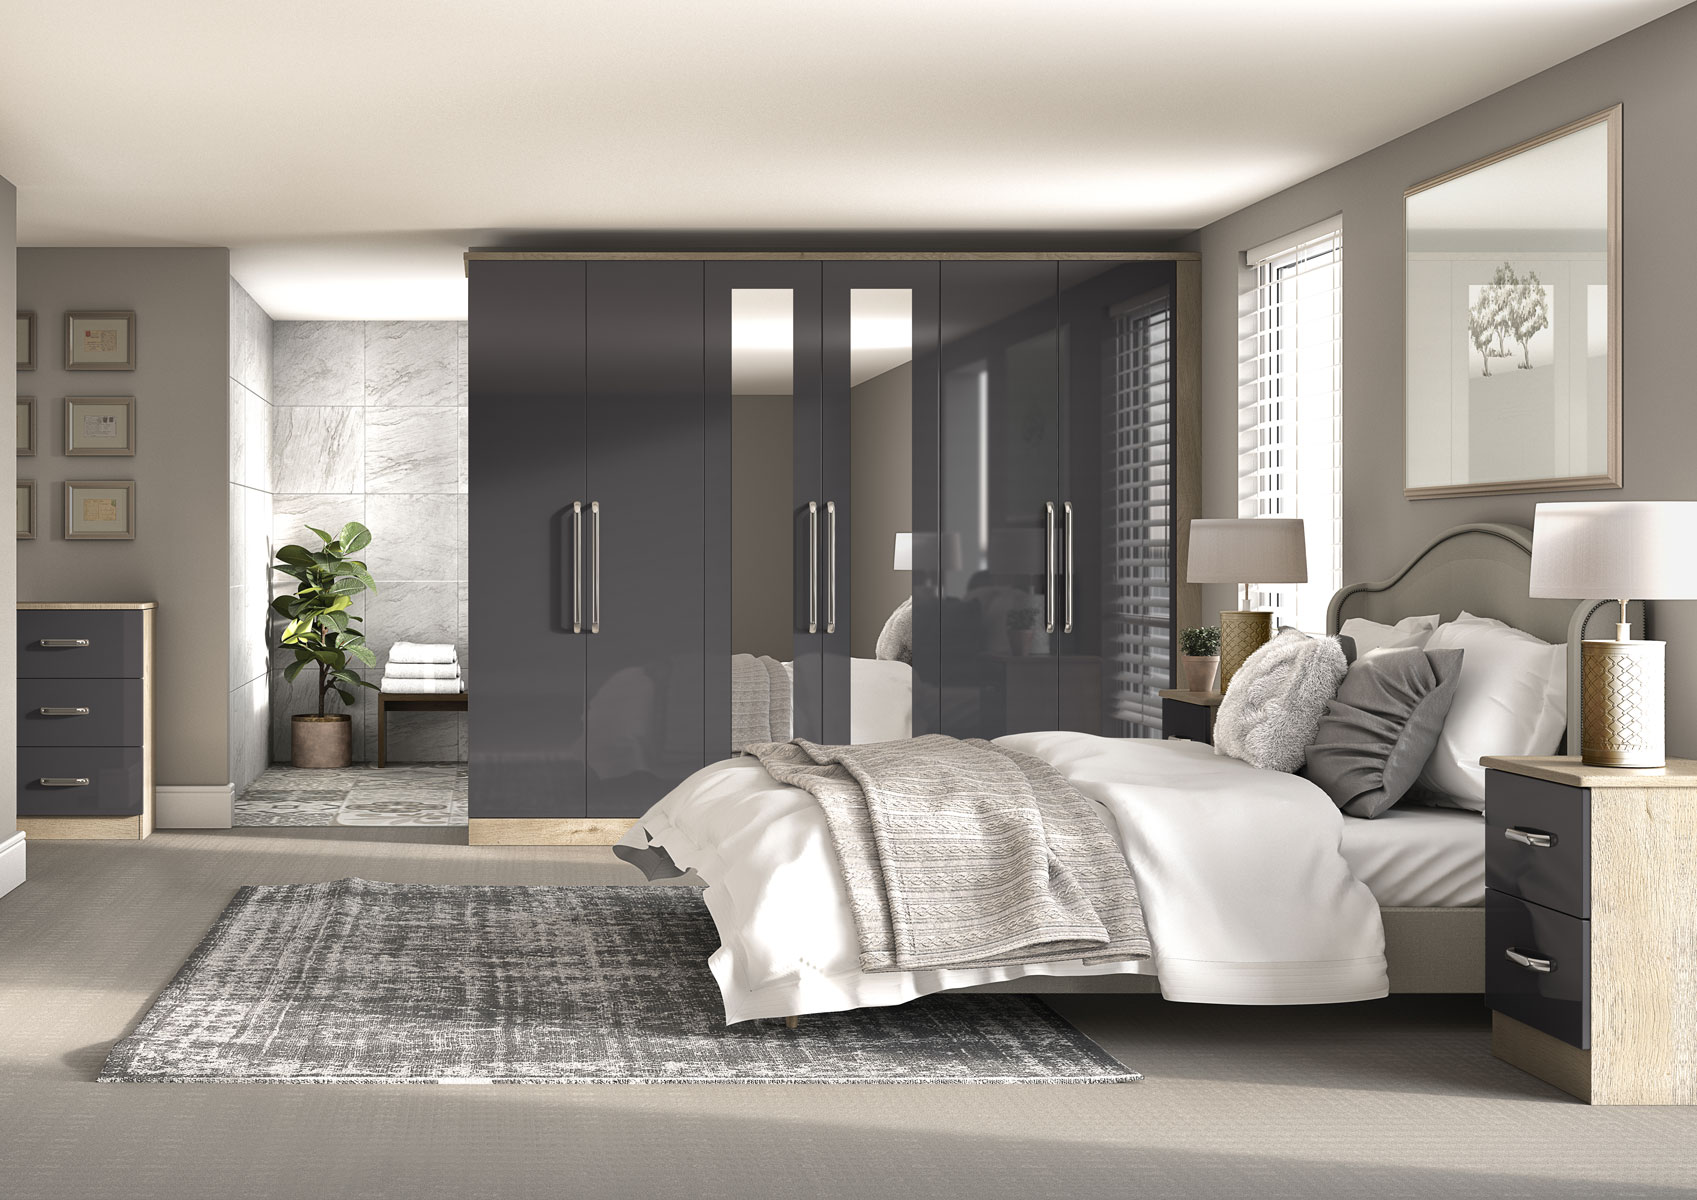 Bedrooms Kitchen Cgi